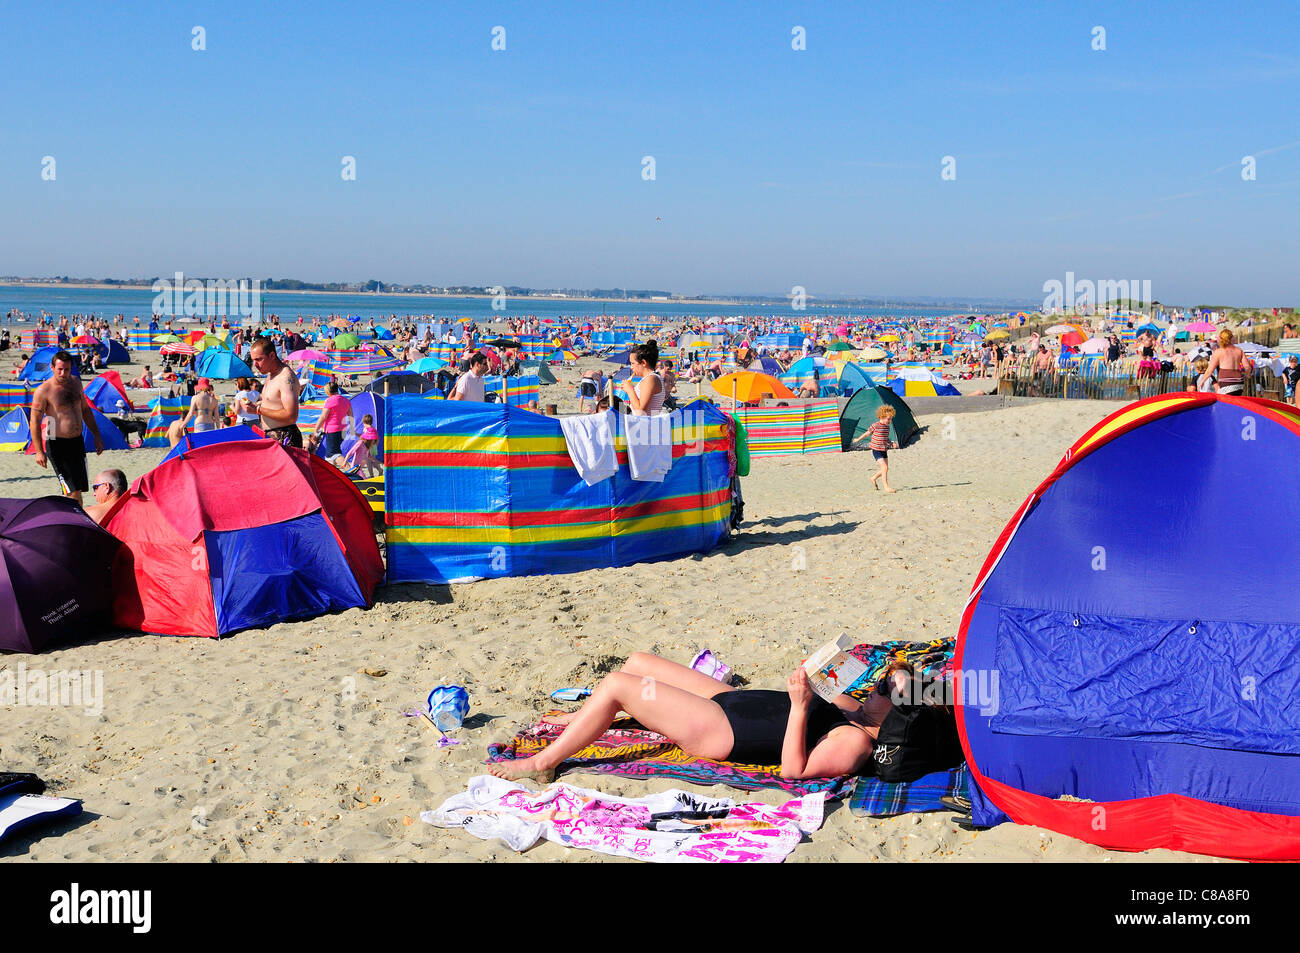 Crowds sunbathing on West Wittering beach during the unusualy hot weekend  of 1st 2nd October 2011 - Stock Image